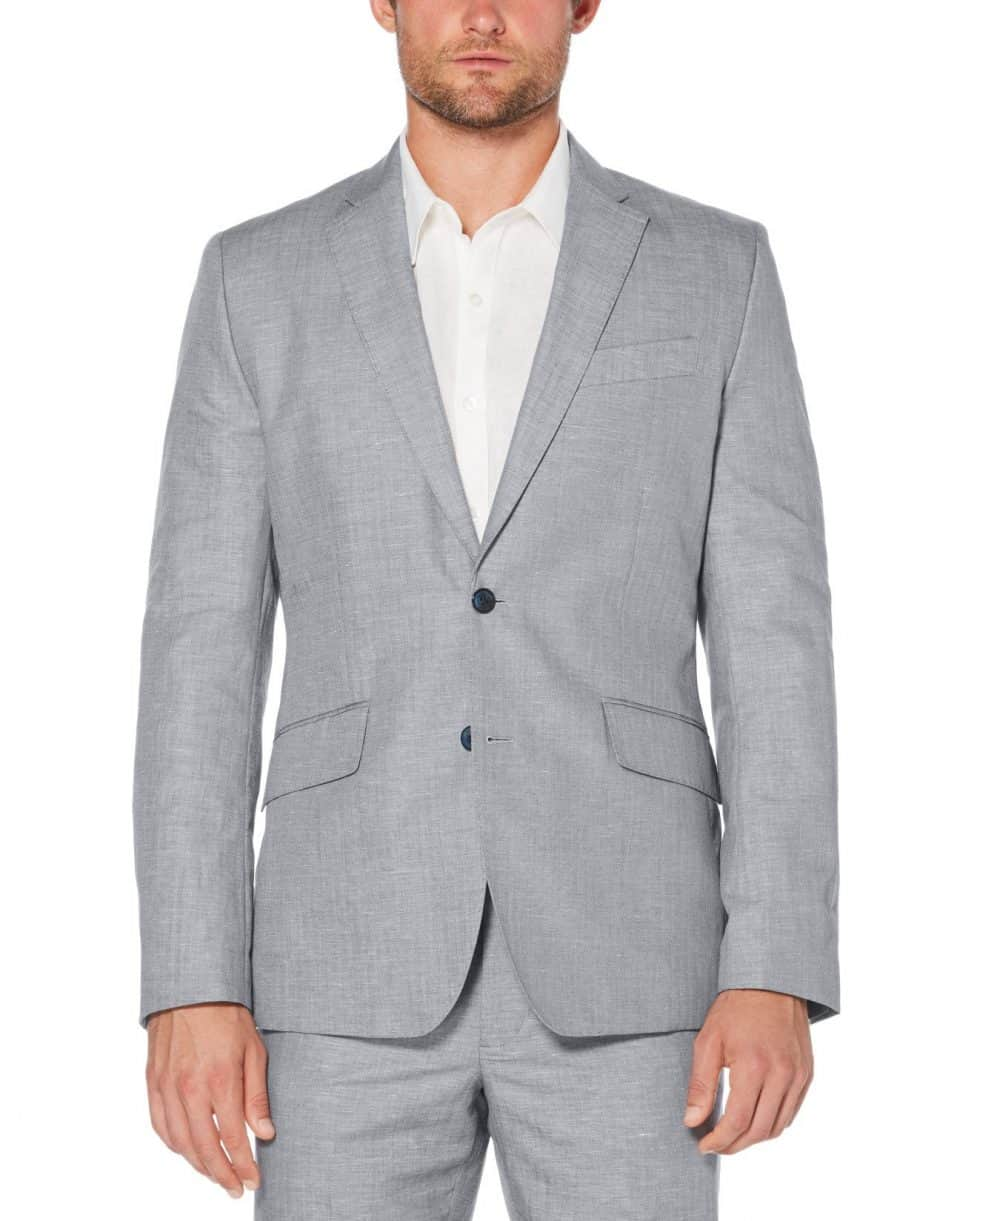 Cubavera Men's Cotton Linen Herringbone Blazer (Dress Blues) - Size S